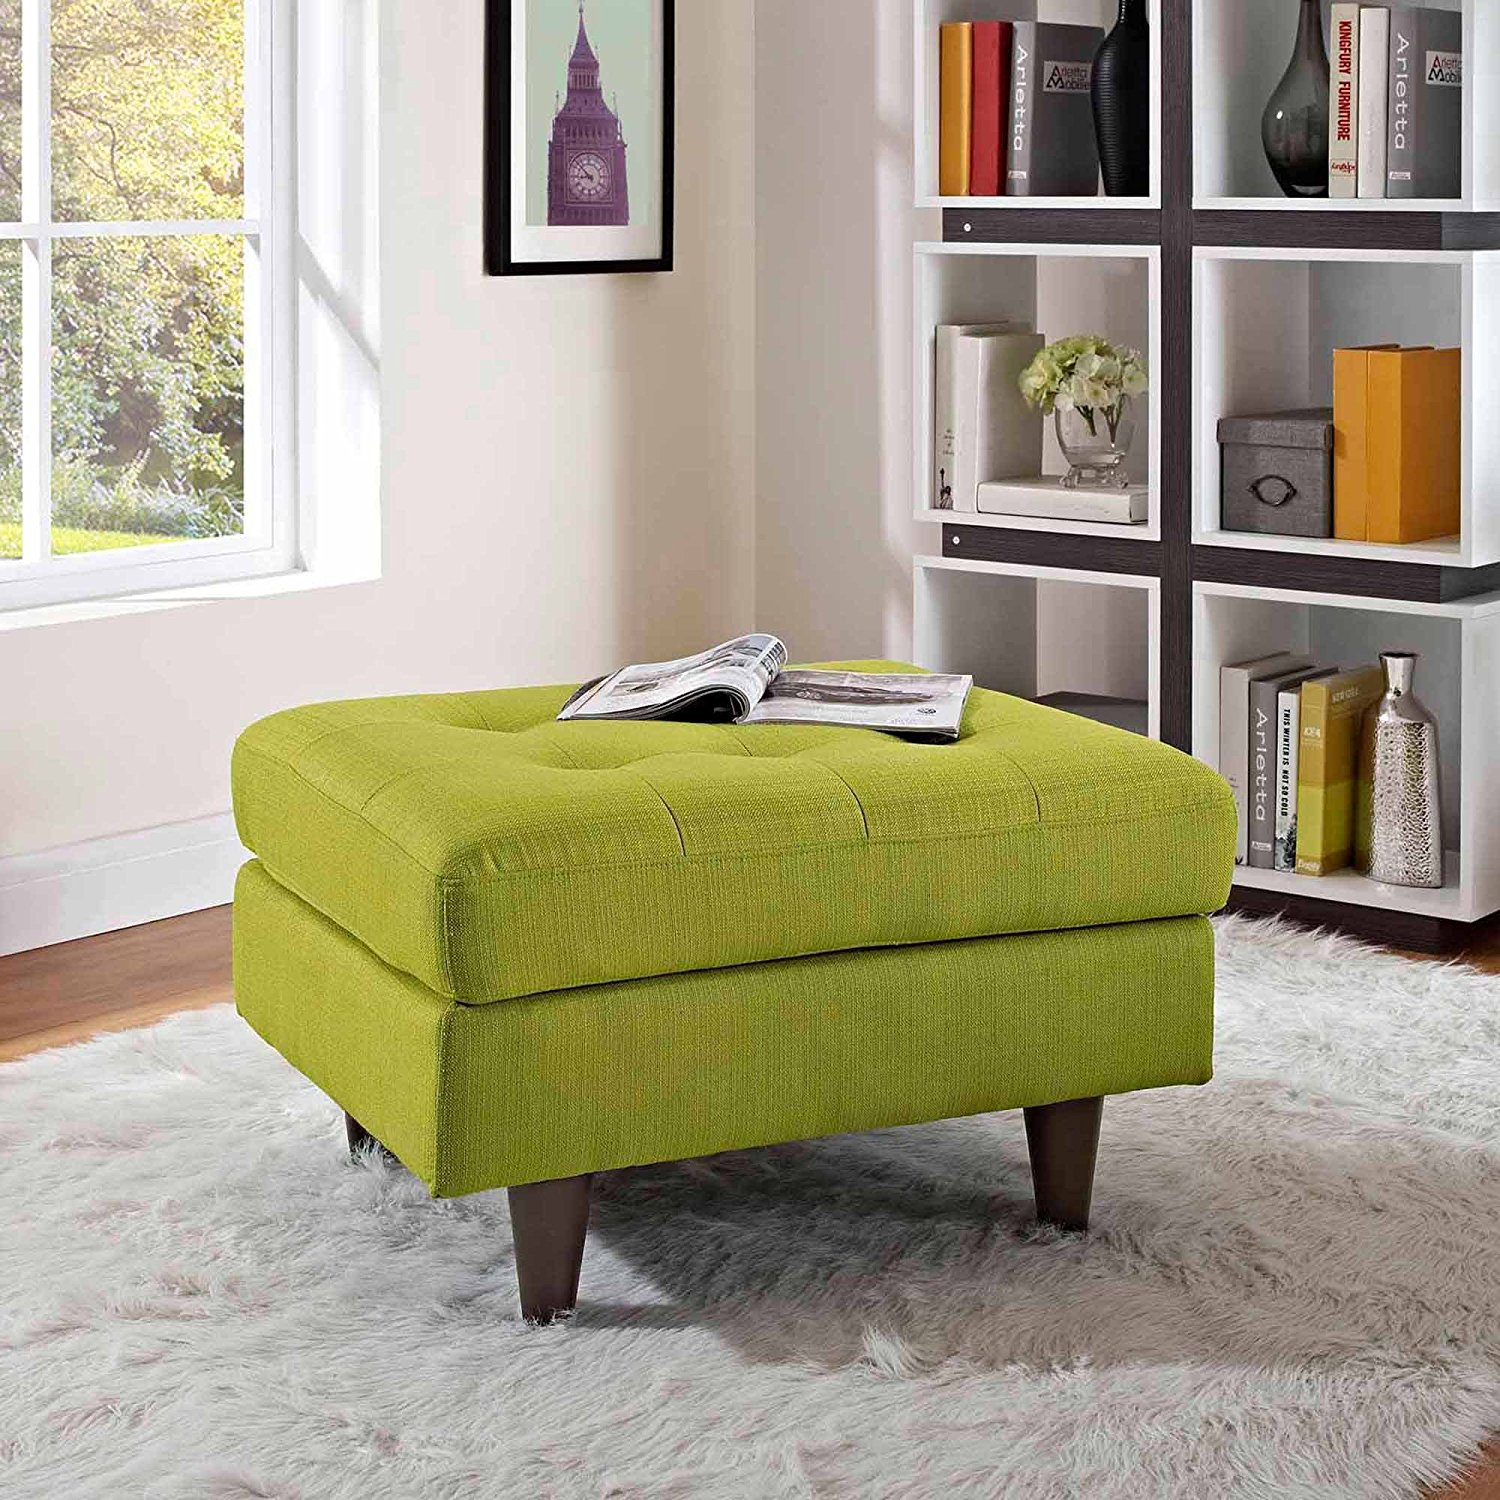 Upholstered Ottoman, Mid-century Style Ottoman, Solid Wood Legs, Foam Padding, Fabric Upholstery, Wheatgrass Finish, Spot Clean Surface, Bundle with Expert Guide for Better Life